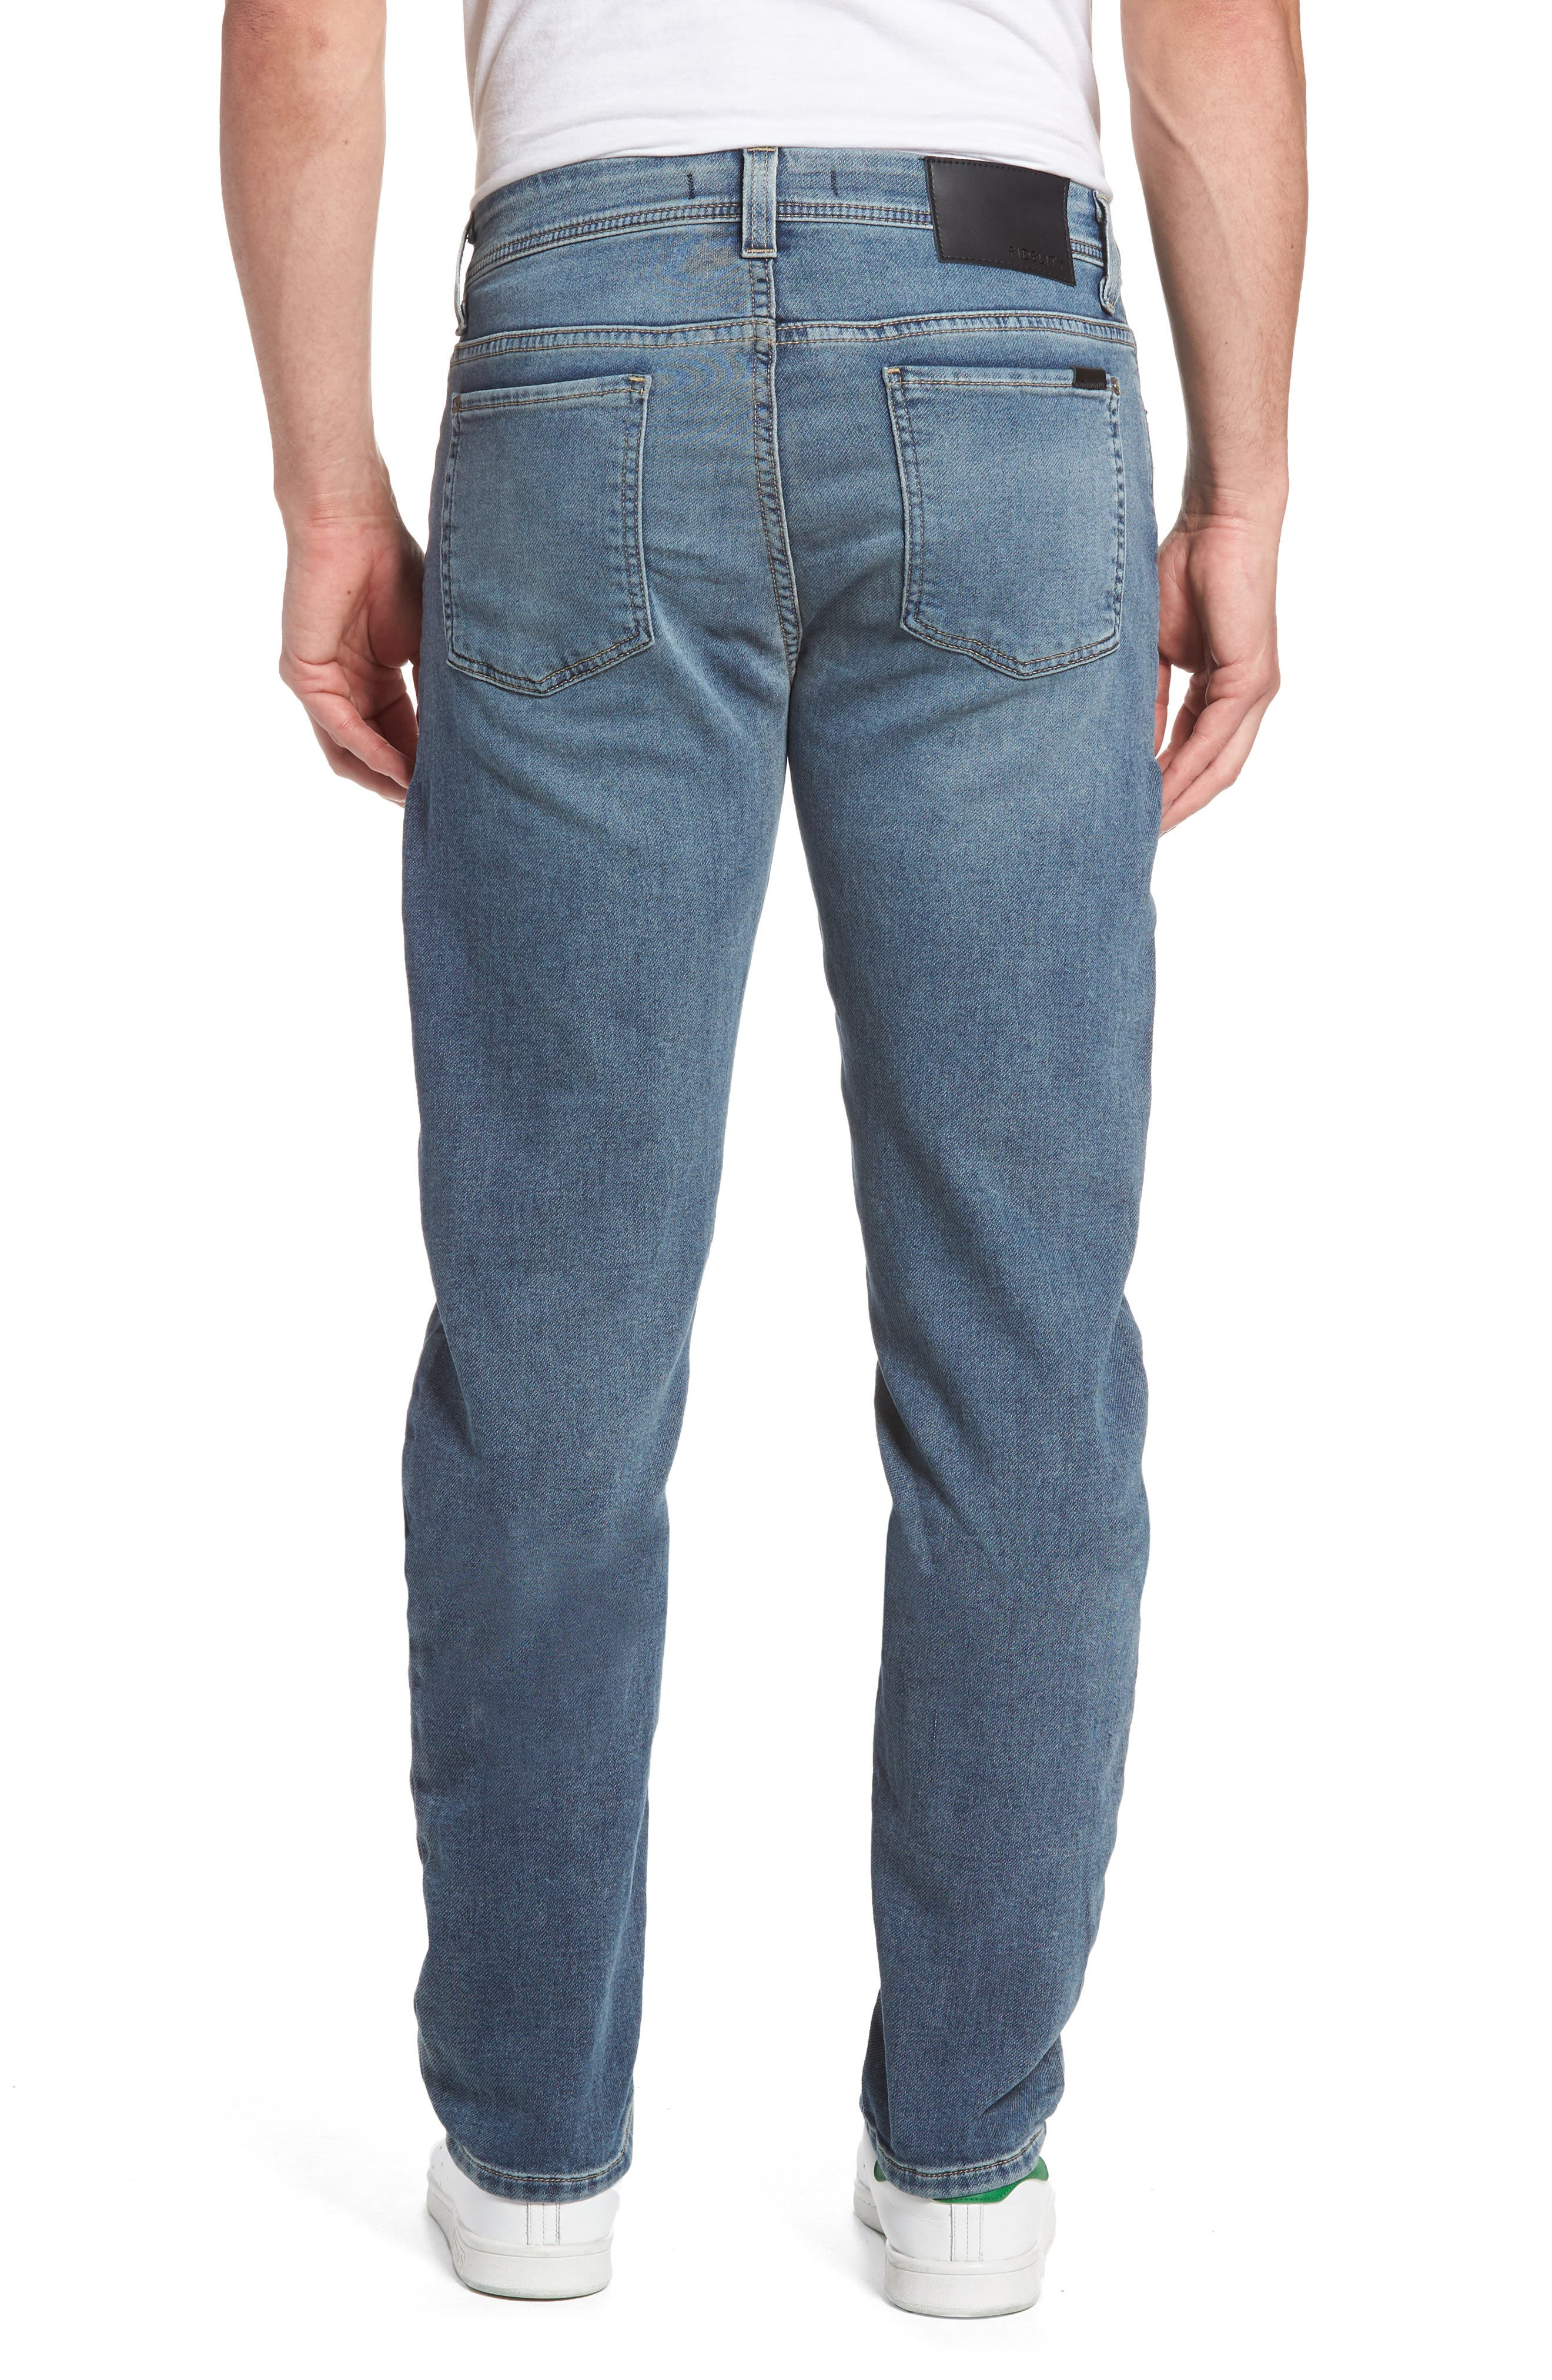 Jimmy Slim Straight Leg Jeans,                             Alternate thumbnail 2, color,                             Oxy Vox Vintage